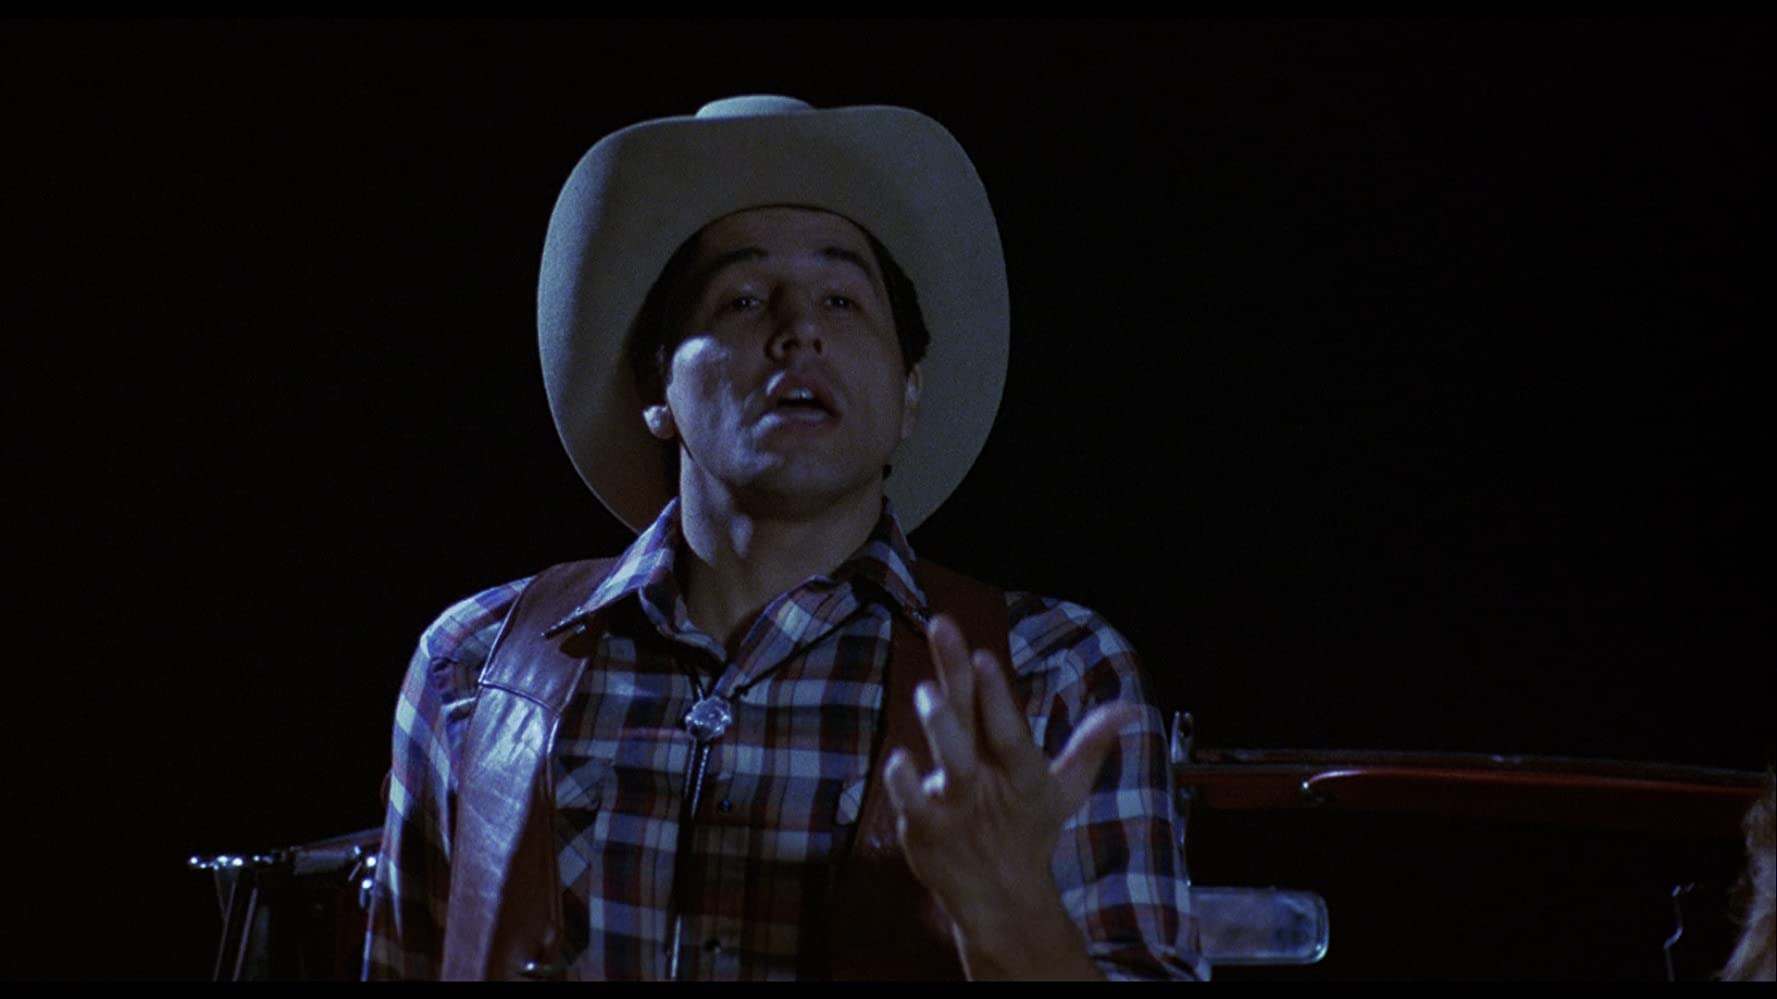 Robert Beltran as a cowboy